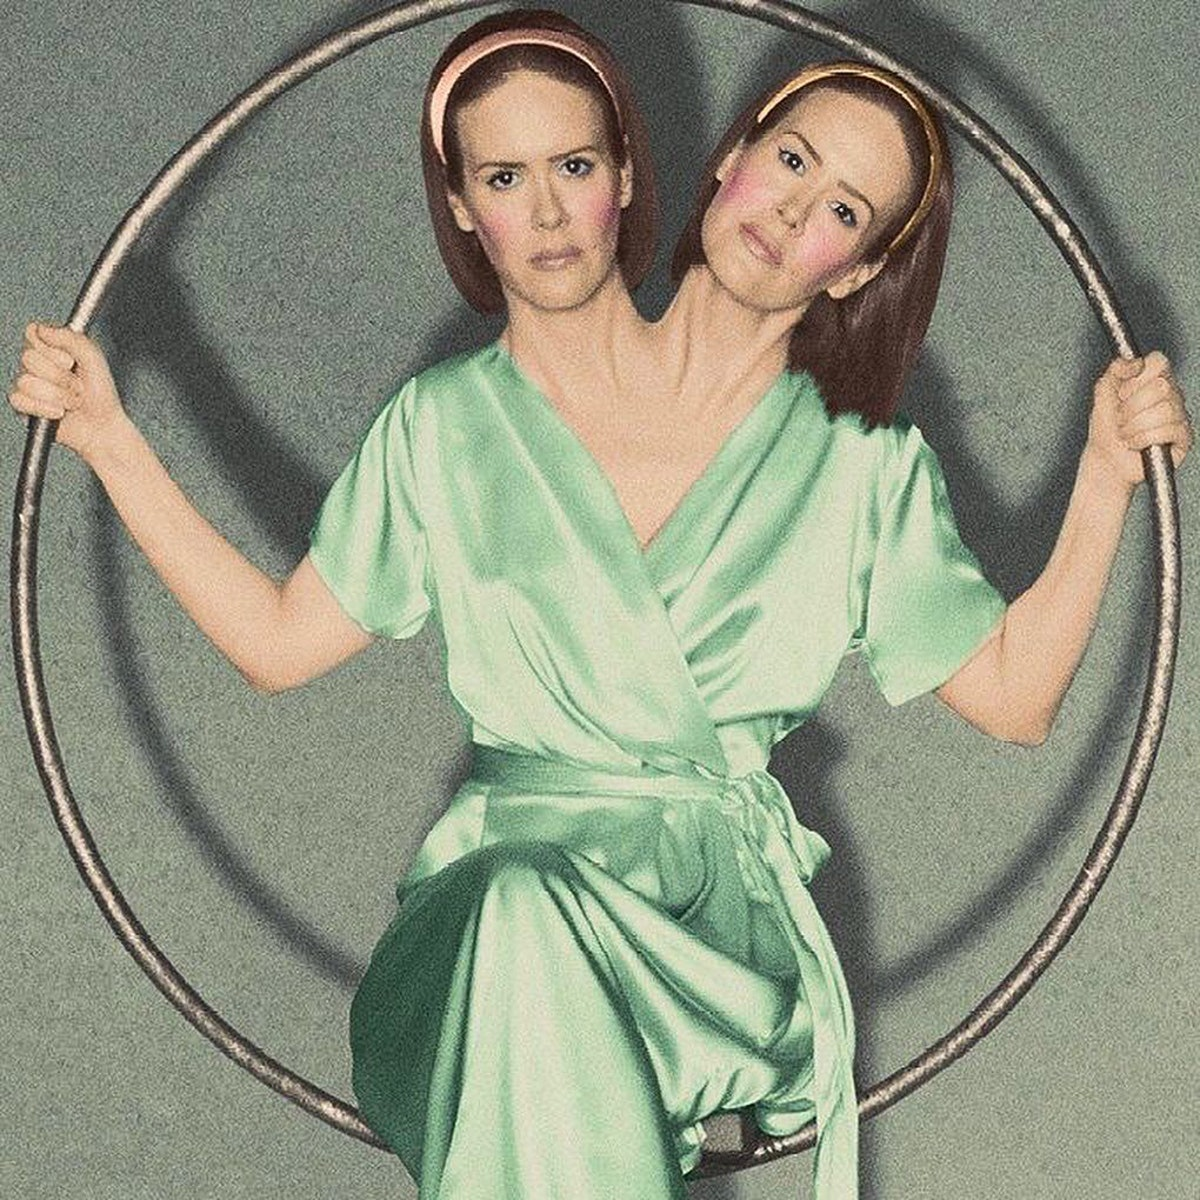 Sarah Paulson playing conjoined twins in American Horror Story